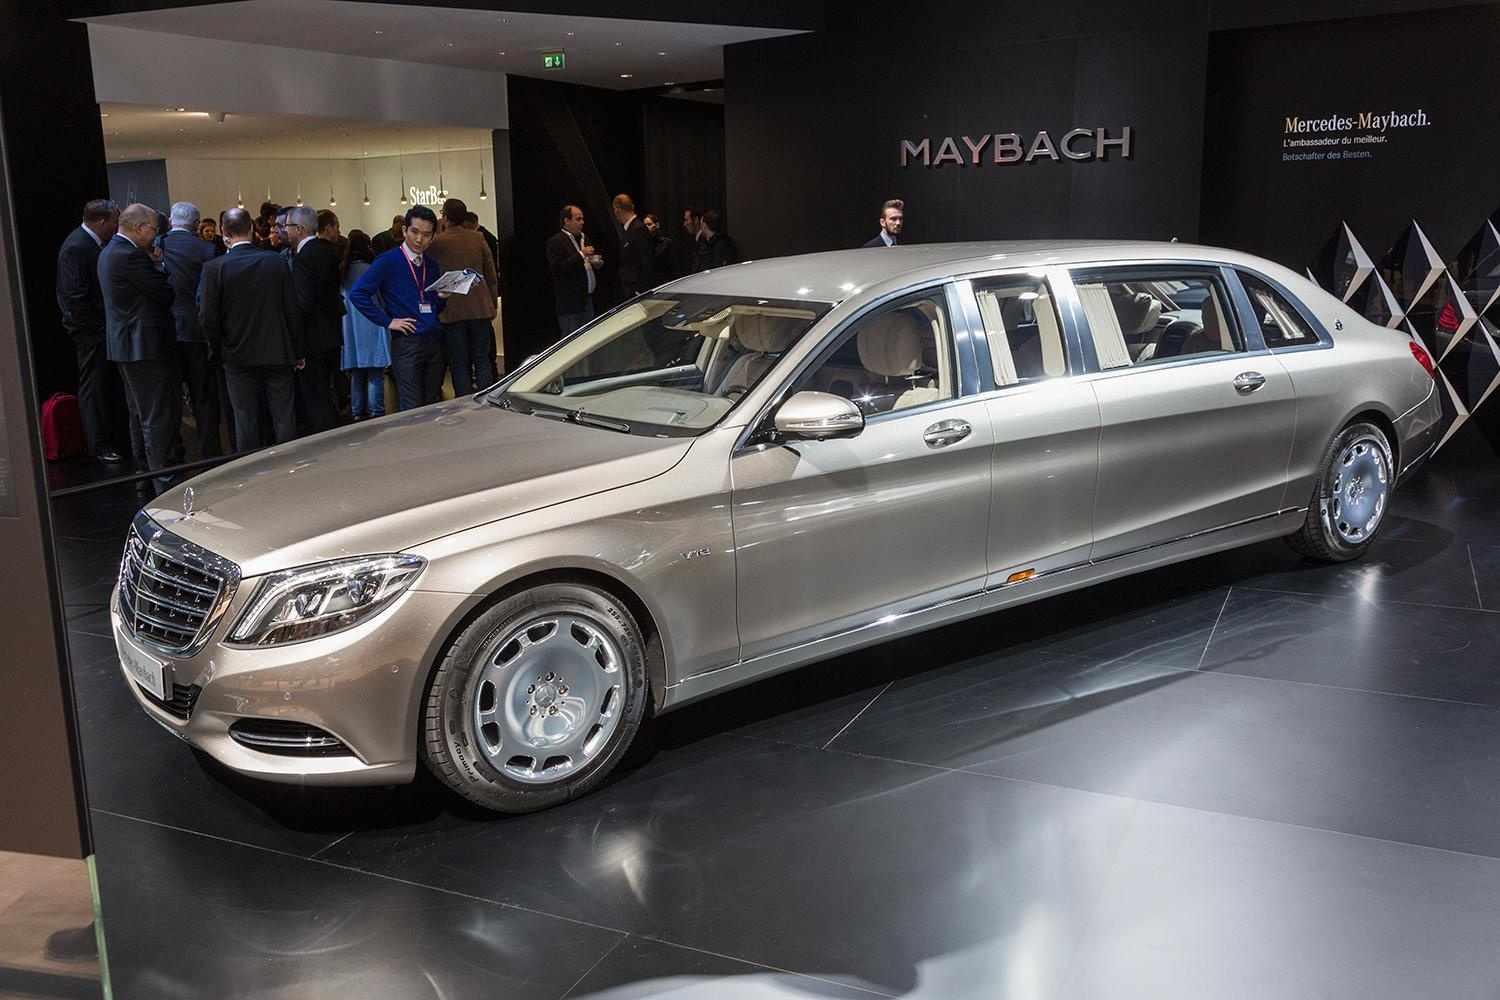 Maybach Photos, Informations, Articles - BestCarMag.com